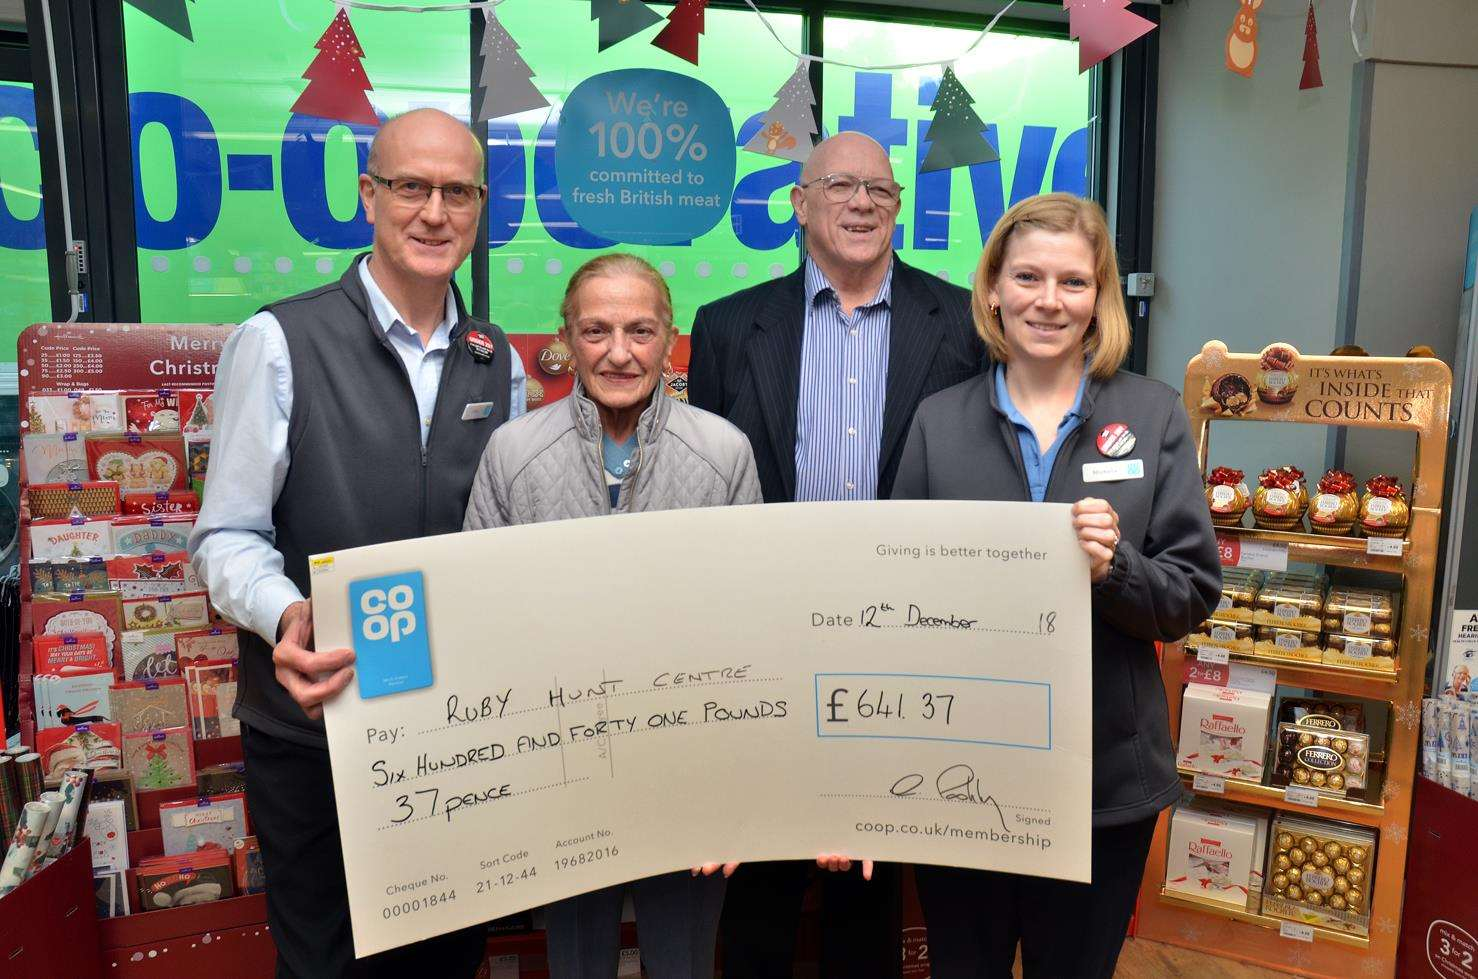 Pictured are Donington Co-op store manager Chris Pashley, Ruby Hunt Centre manager Margaret Kenworthy, centre chairman Alan Inns and store community fundraiser Michelle Thorpe.